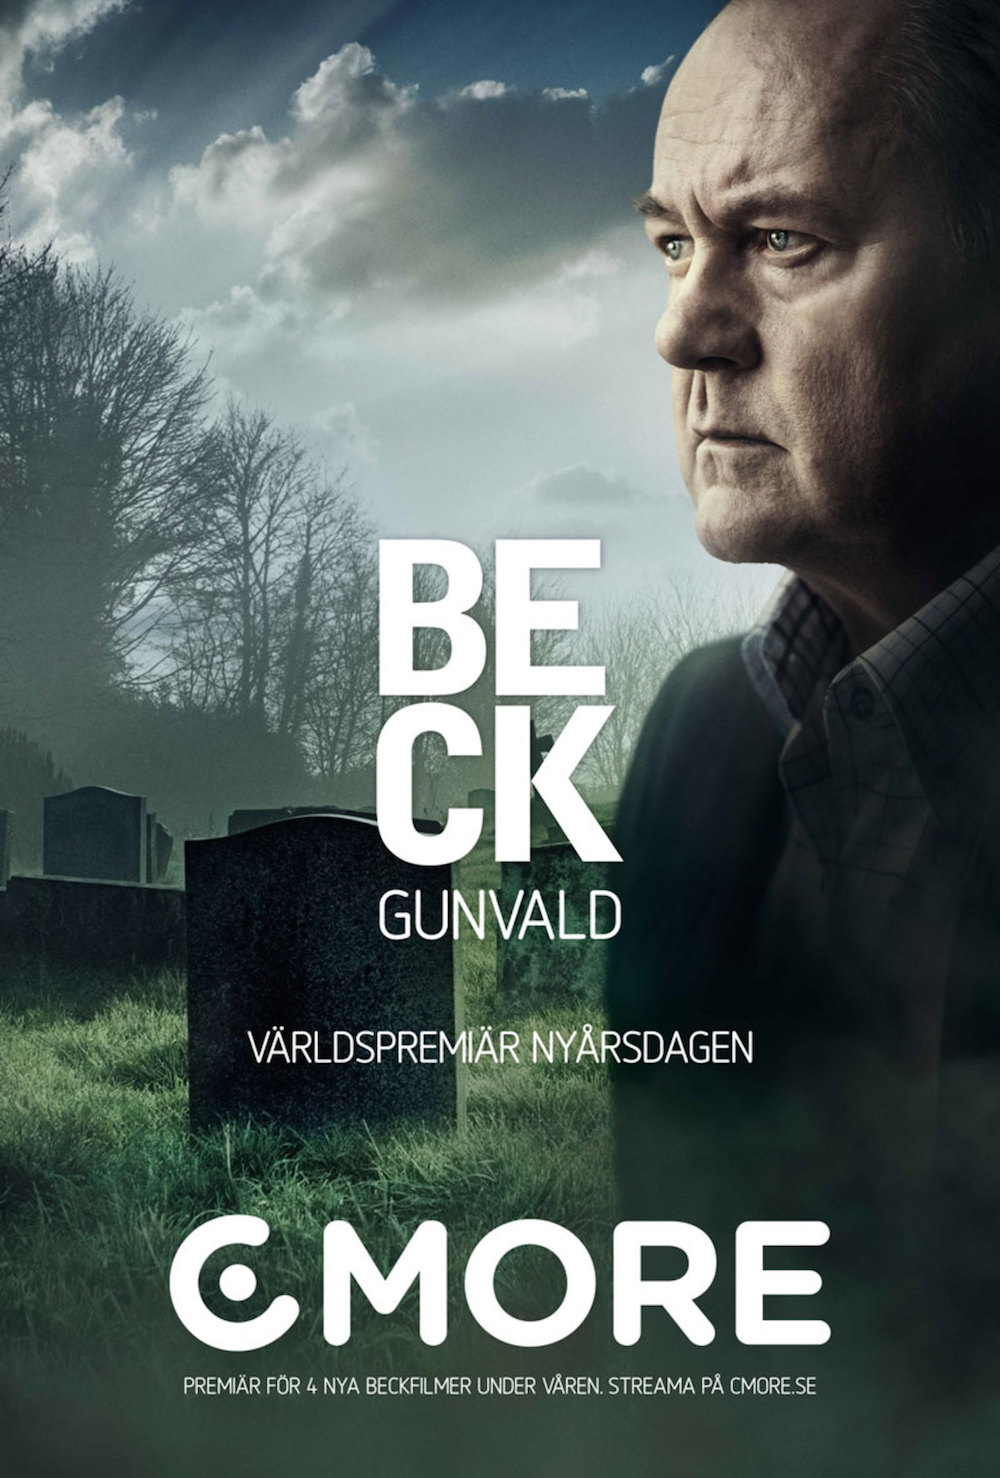 <h2>Beck - Gunvald (2015)</h2>EffektStudion produced a burnt body and a swollen face prosthetic for this Beck-movie